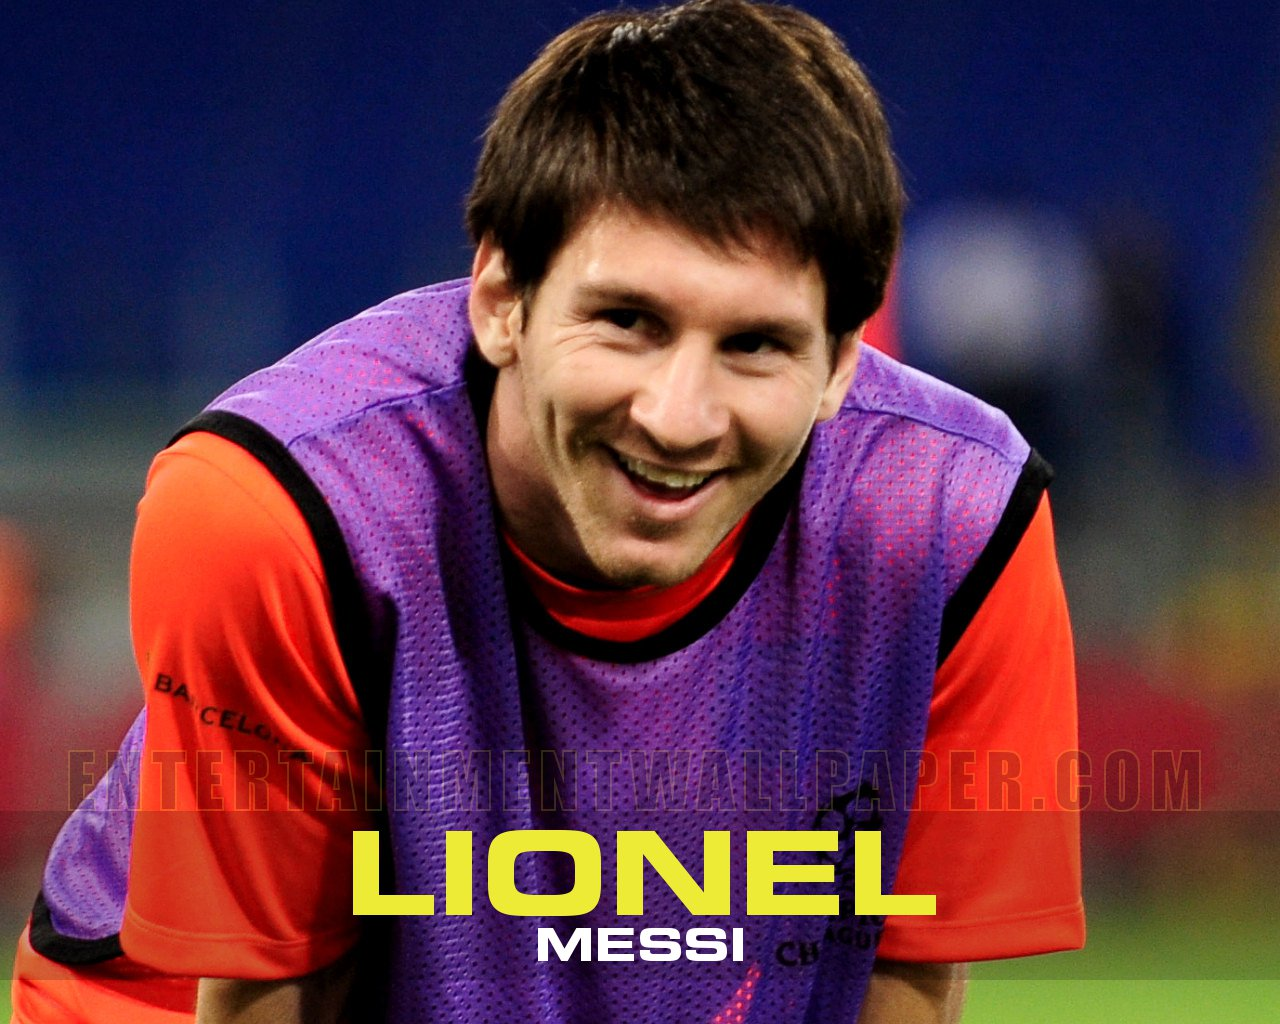 Lionel Messi Wallpapers HD - Messi Latest Wallpapers 2012